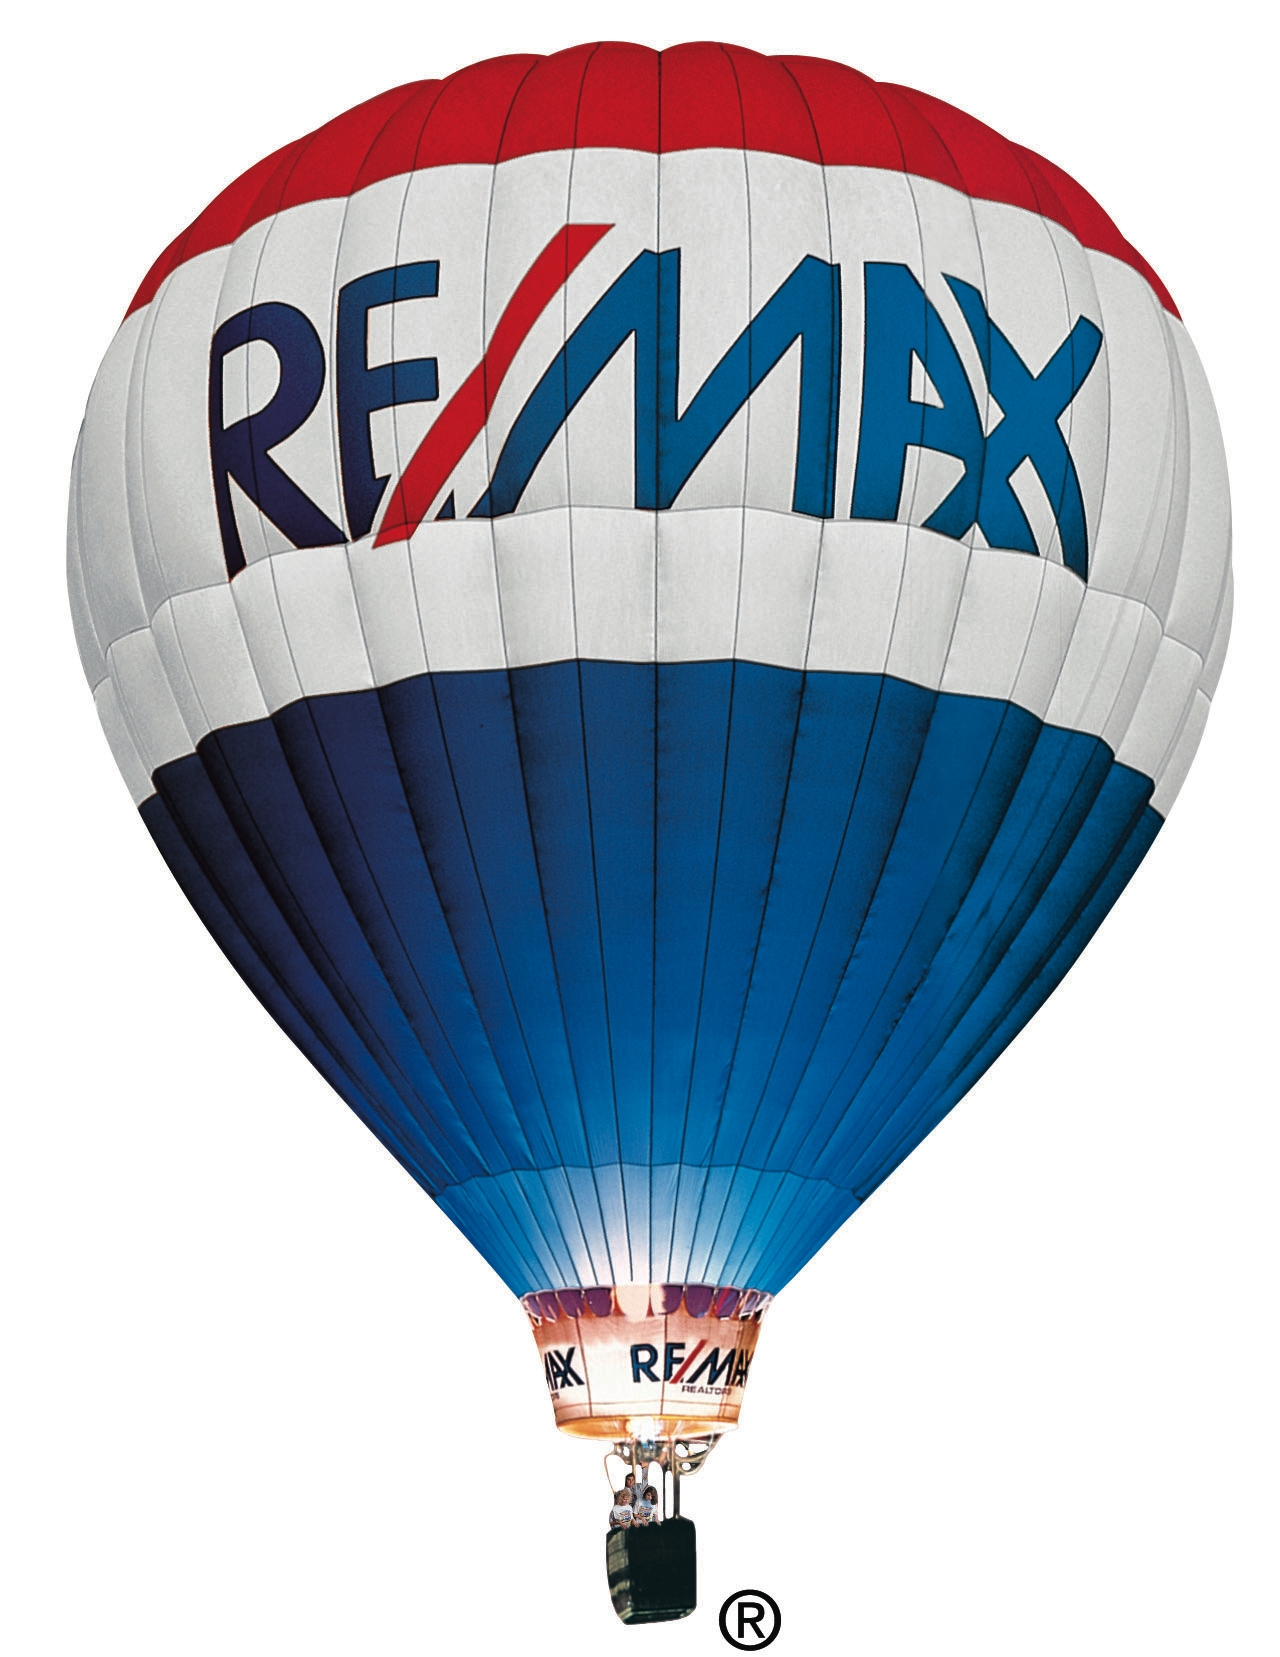 REMAX - Custom Homes The Woodlands